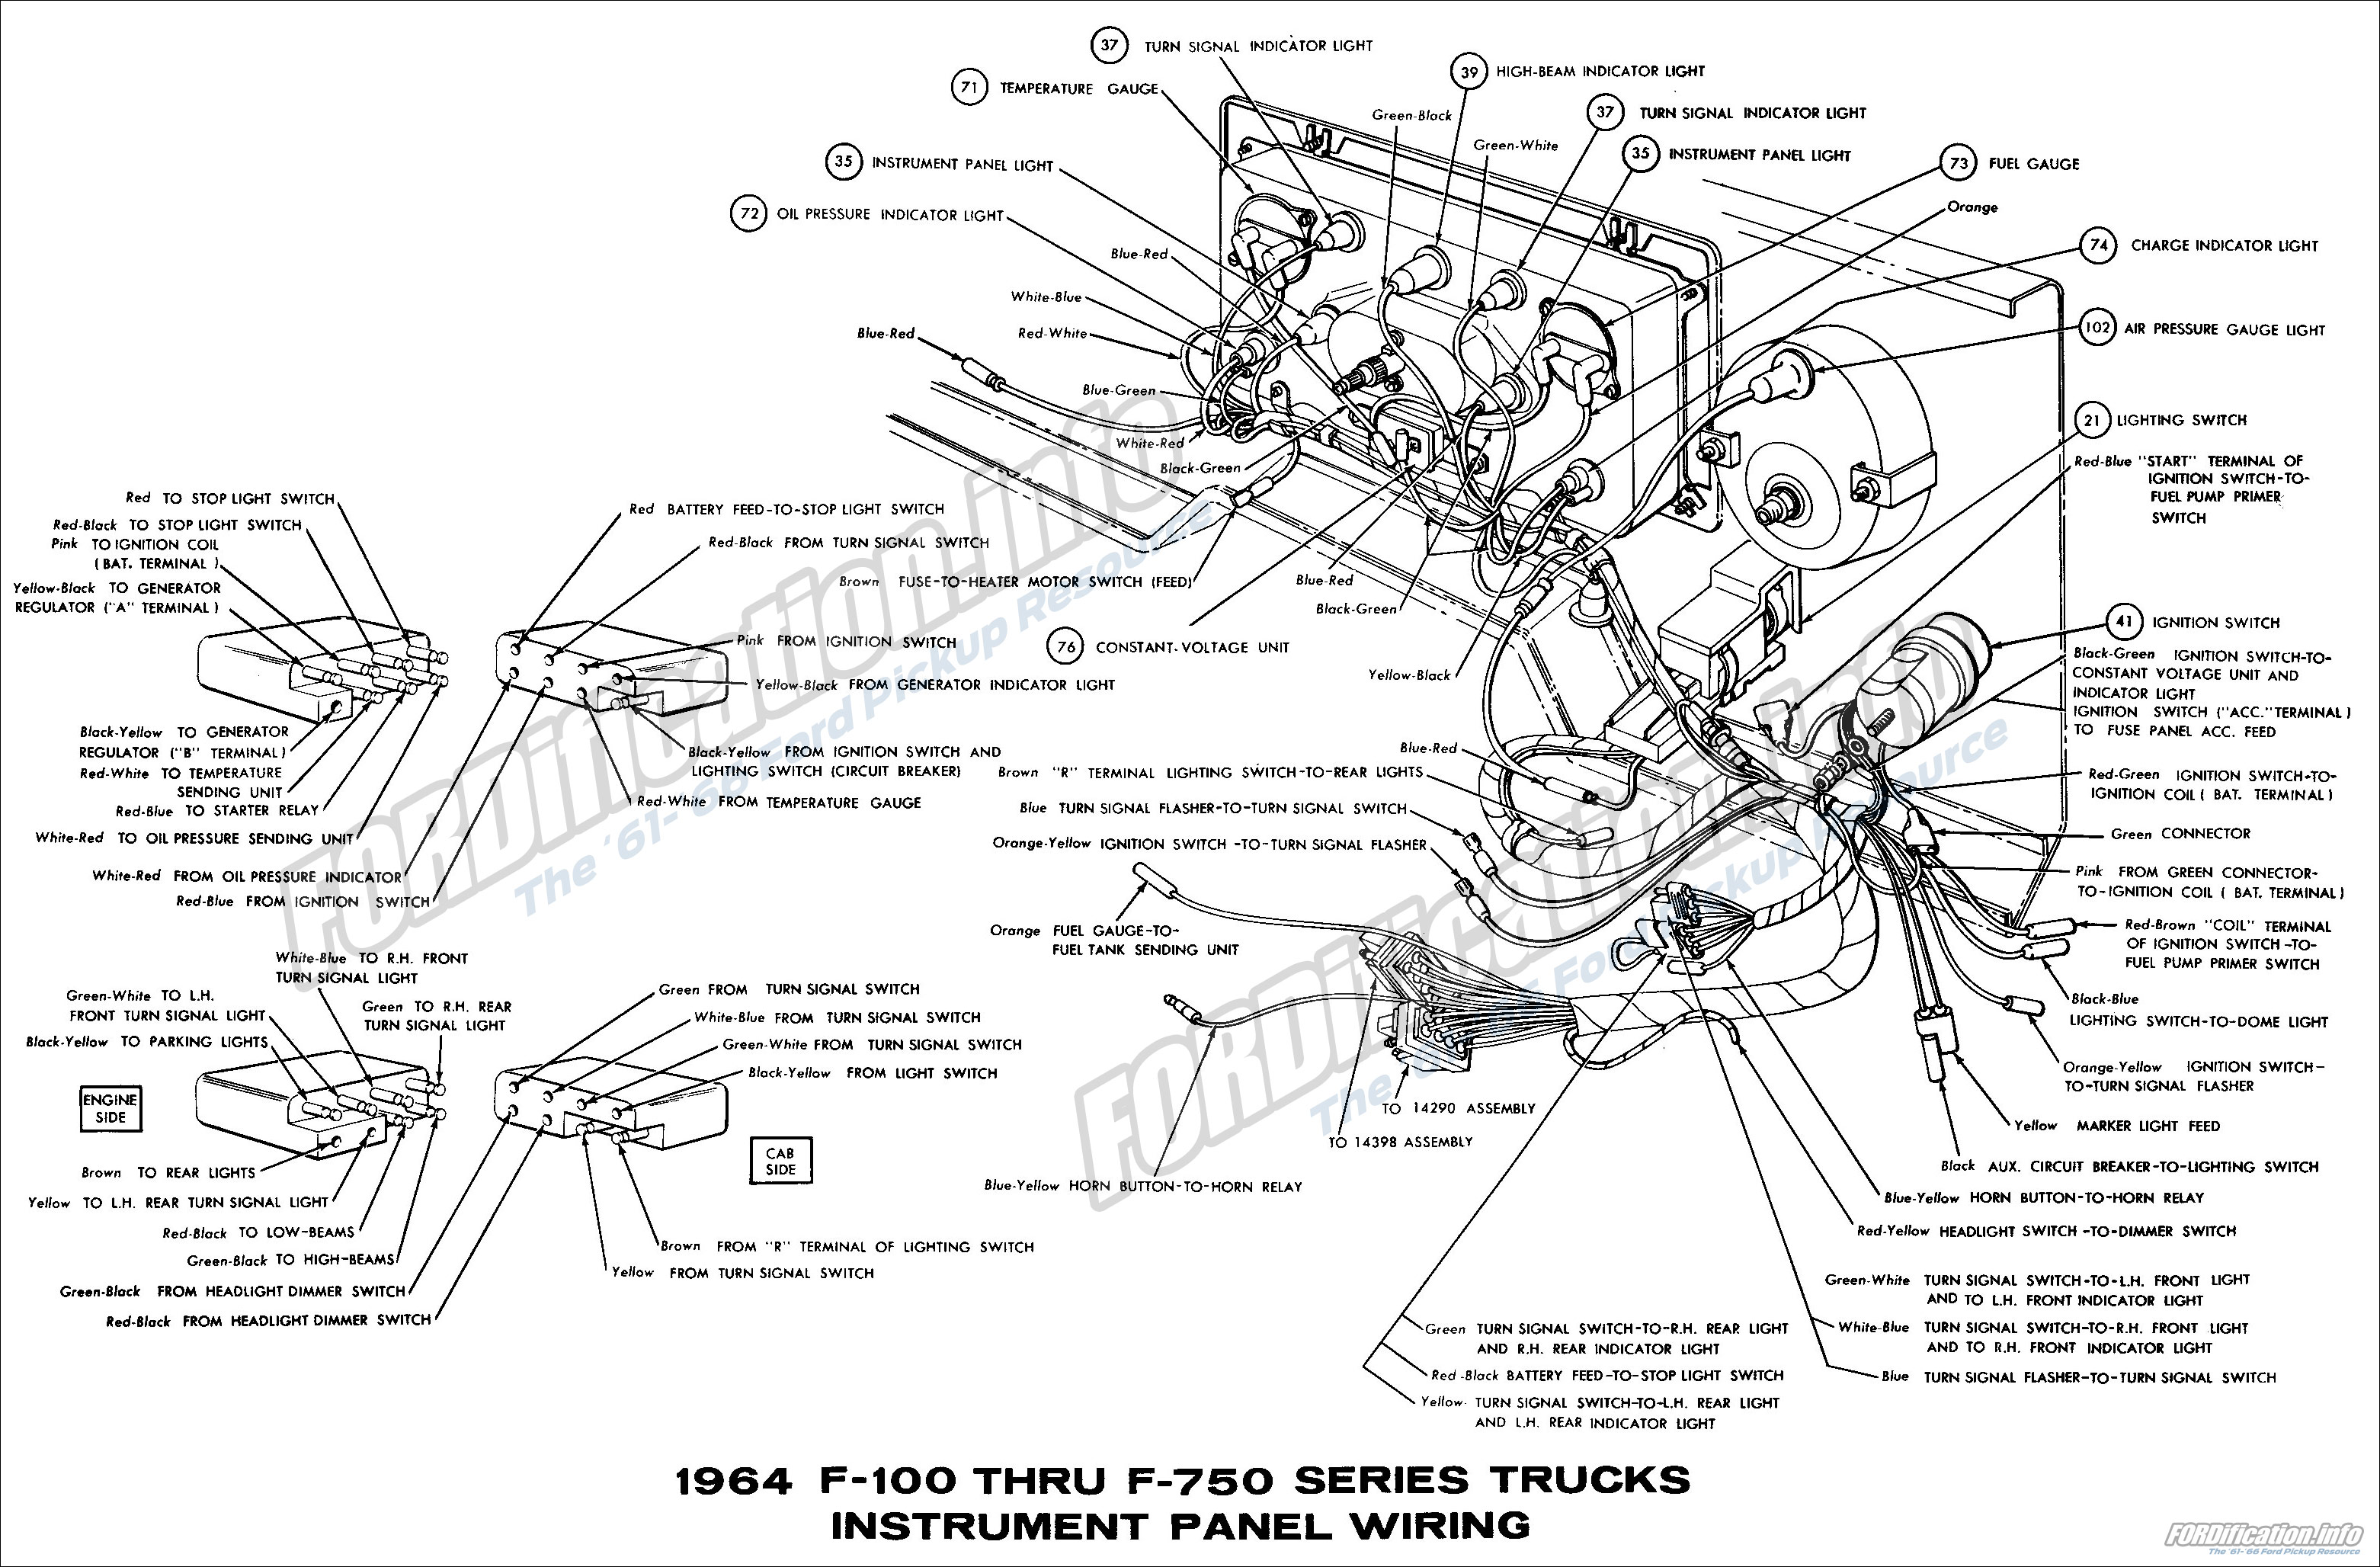 1964_02 wiring diagram for 1964 ford f100 readingrat net 1961 ford truck wiring diagram at gsmportal.co